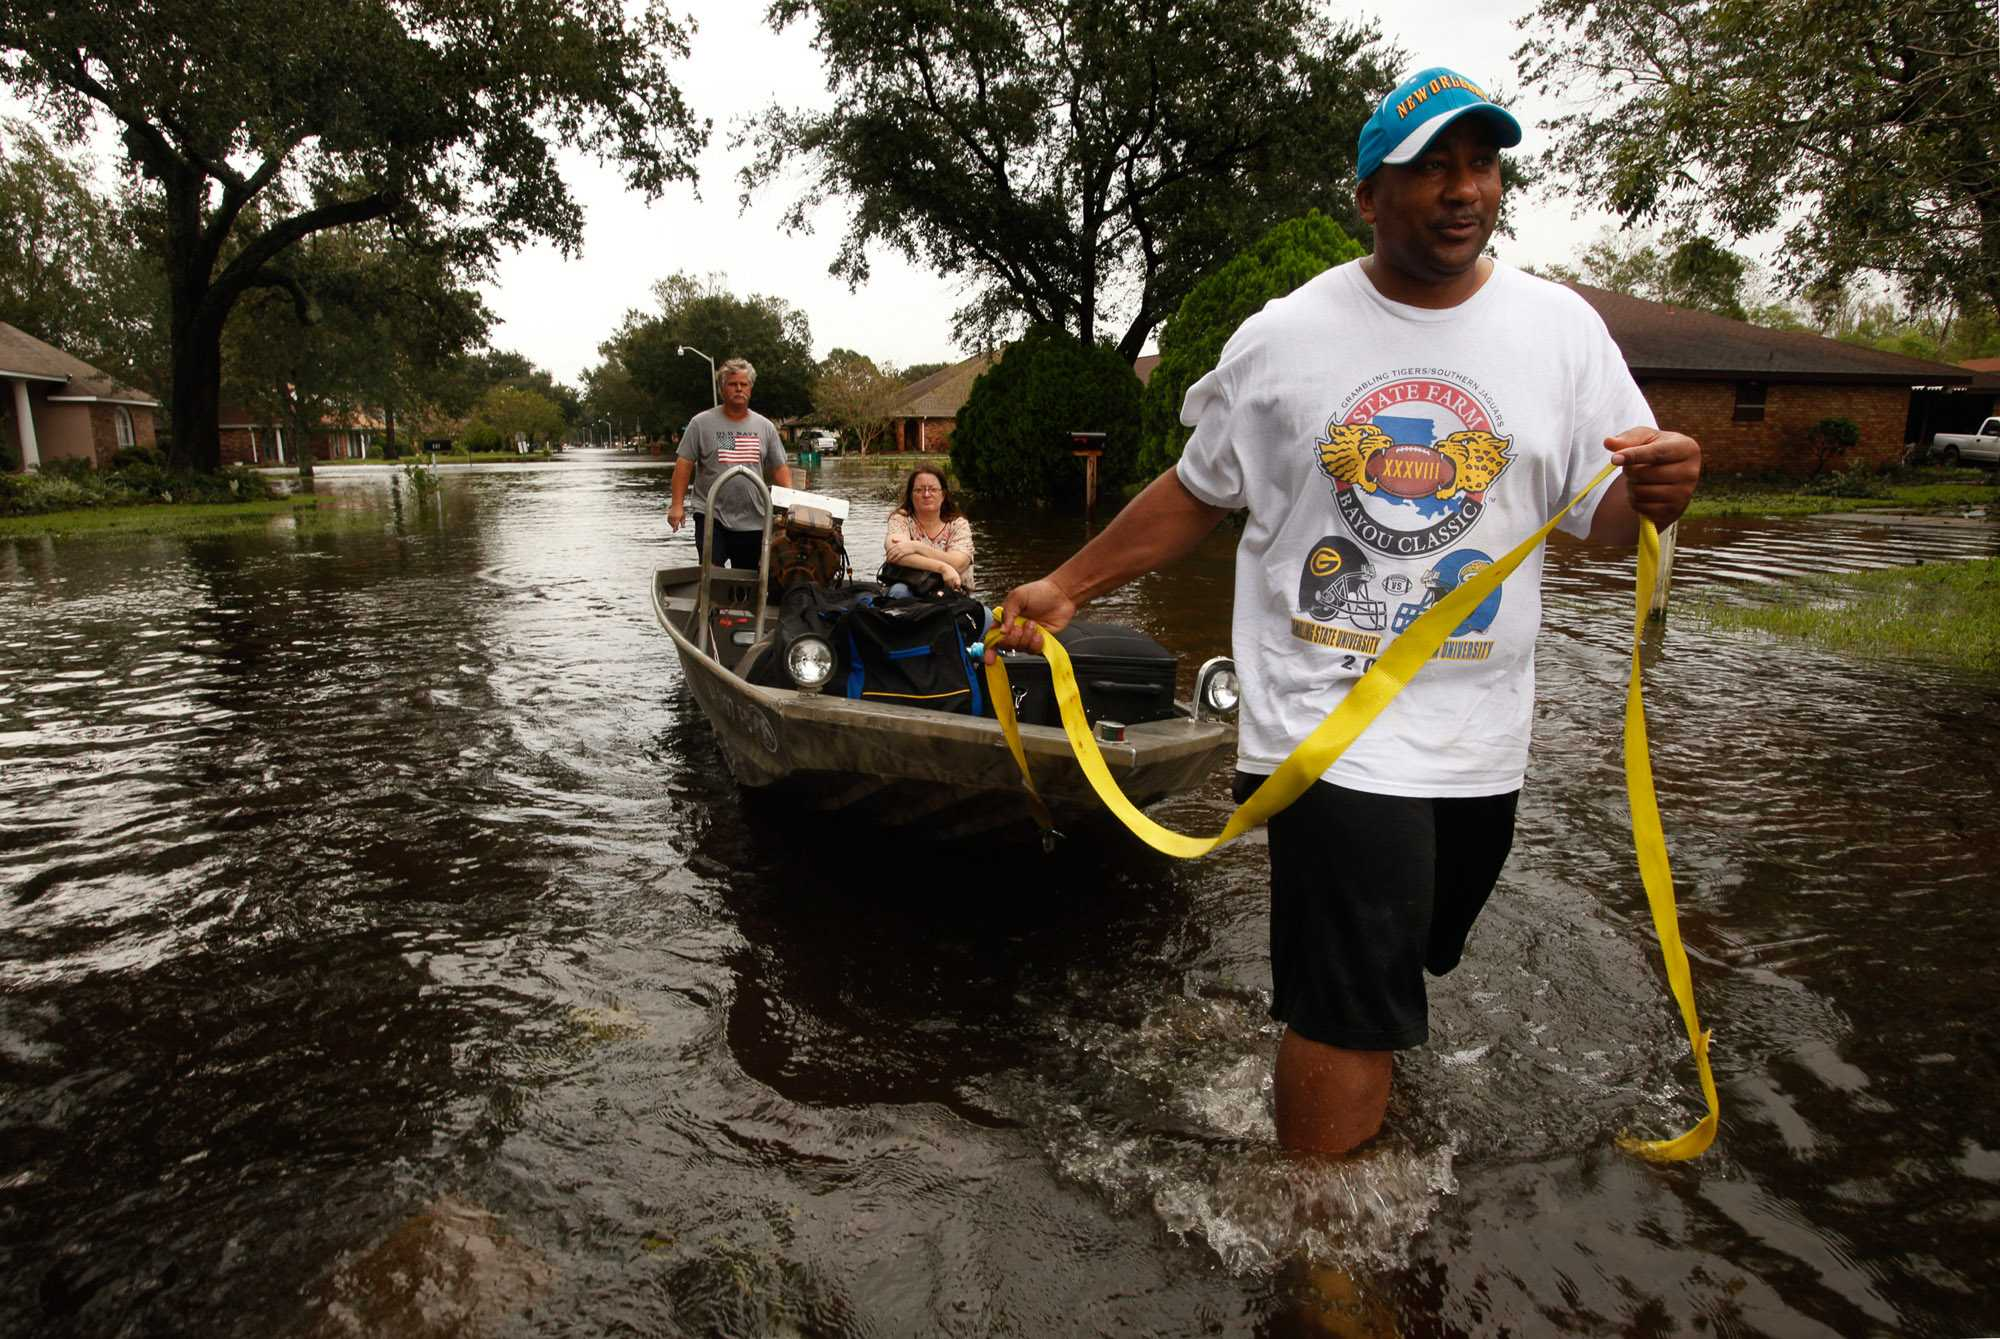 Leroy Smith, right, helps evacuate Michele Bowers with Hank Schlindwein, back, in La Place, Louisiana, on Thursday, August 30, 2012, amid flooding from Tropical Storm Isaac. (Carolyn Cole/Los Angeles Times/MCT)